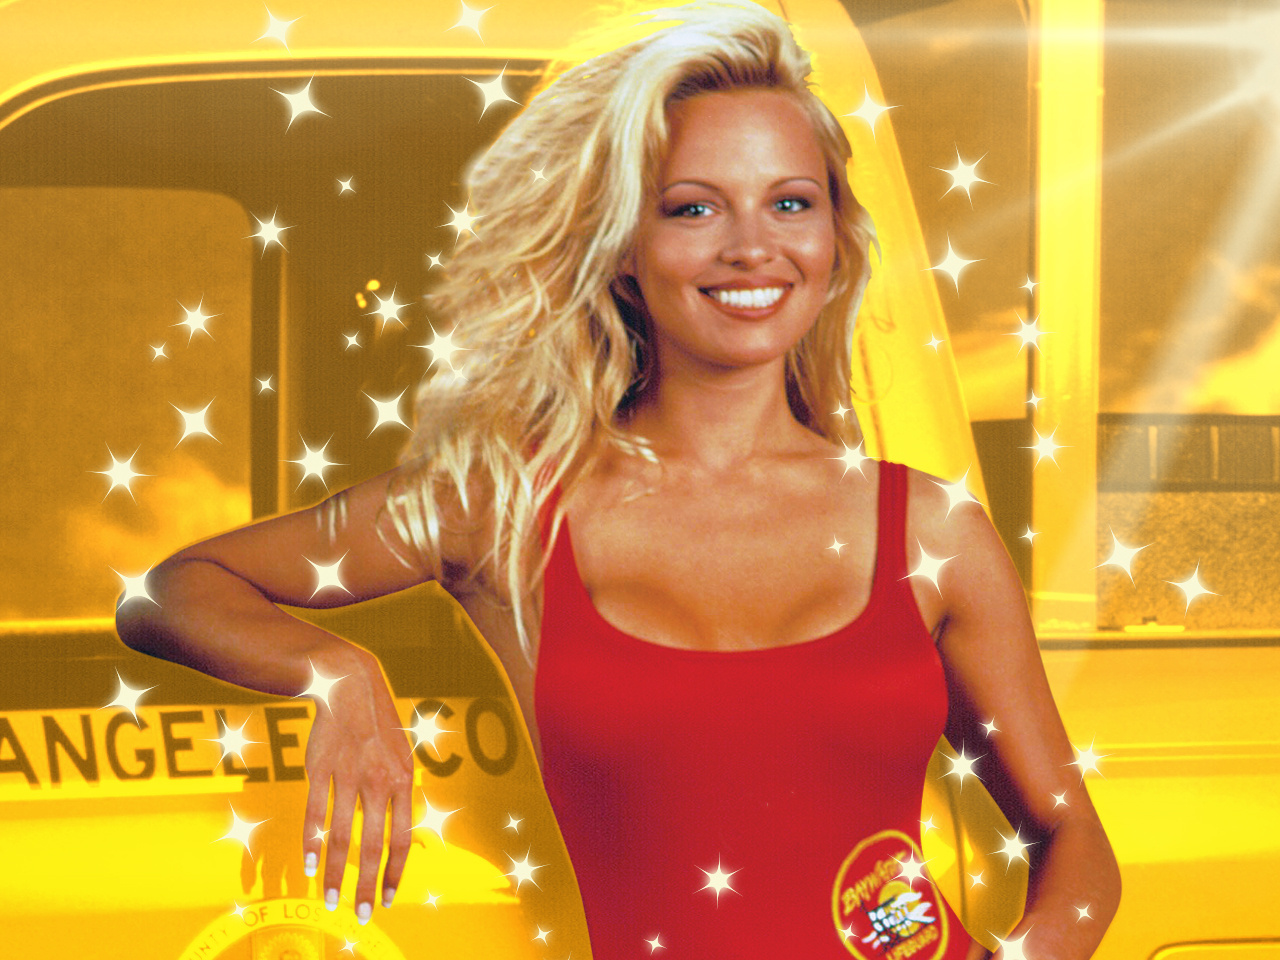 Home At The Beach Decor Pamela Anderson At 50 From Baywatch Bombshell To Ultimate